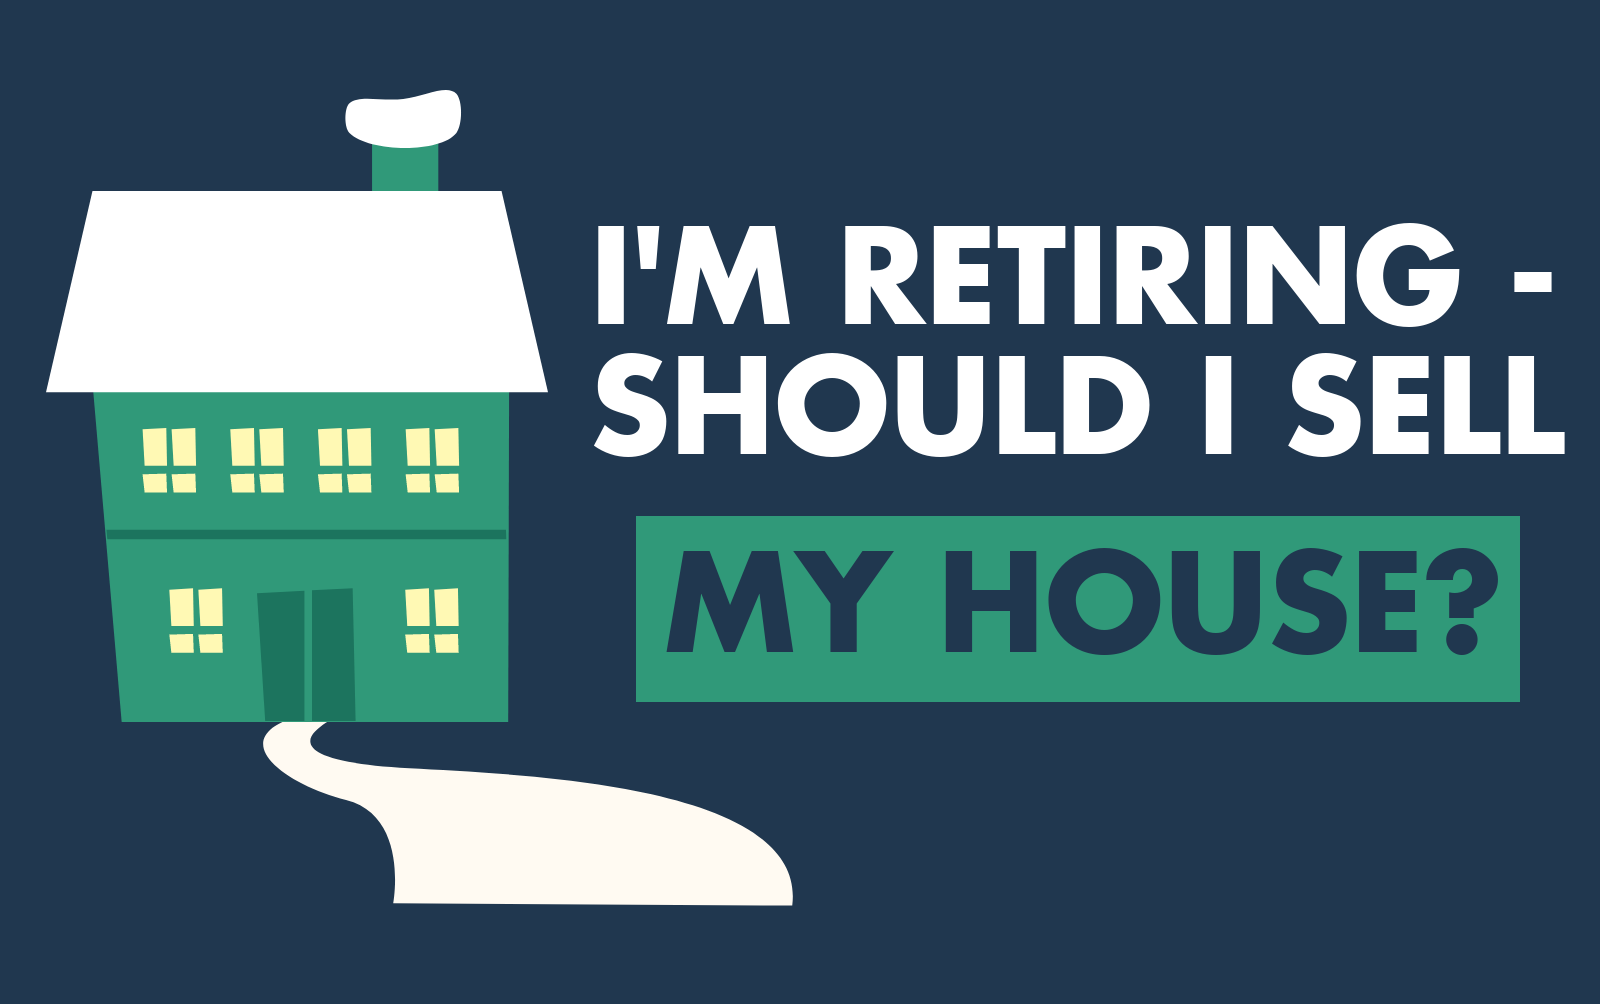 im retiring should i sell my house featured image